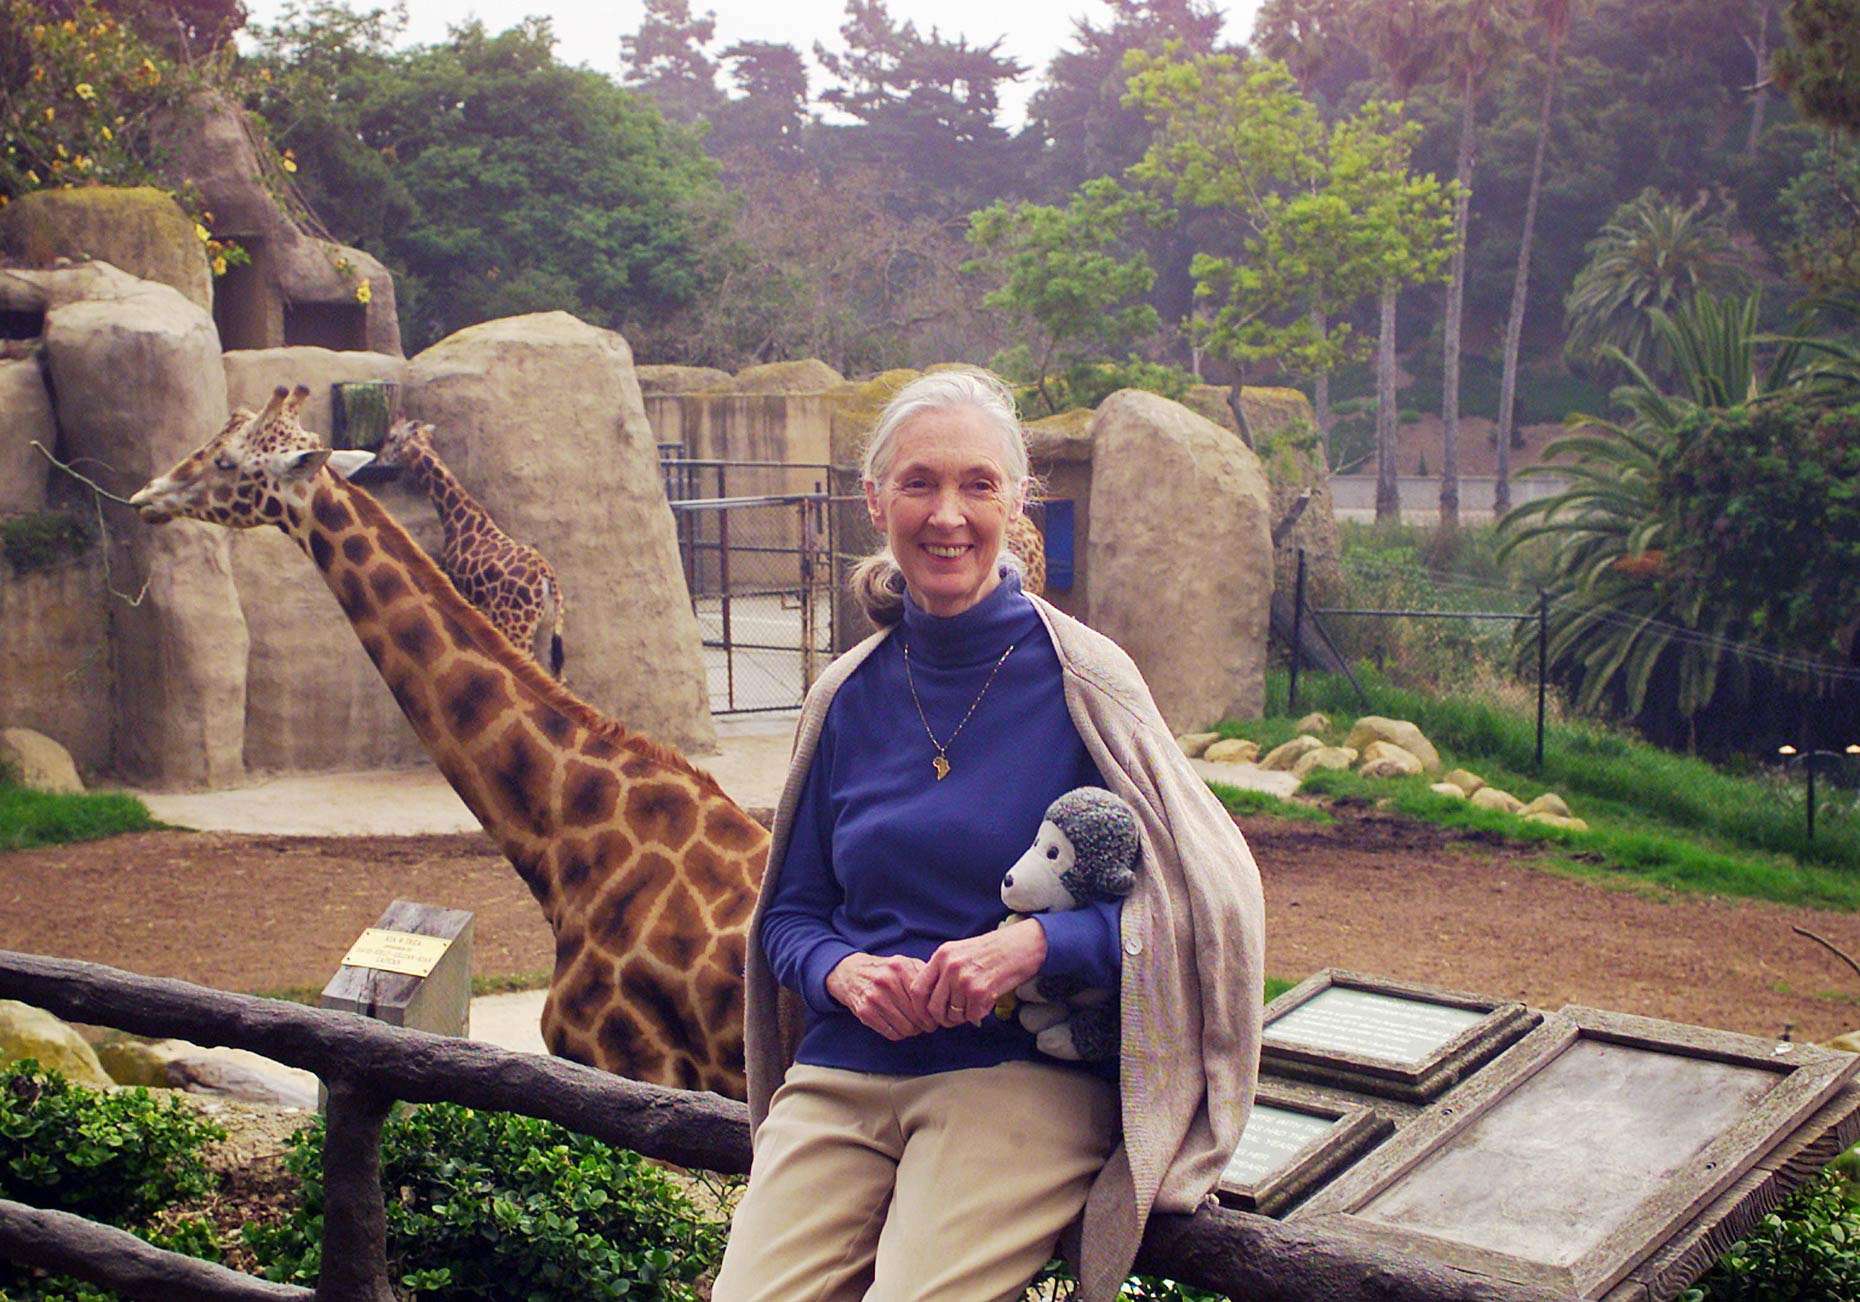 PEO_PhotoReporters_jane-goodall